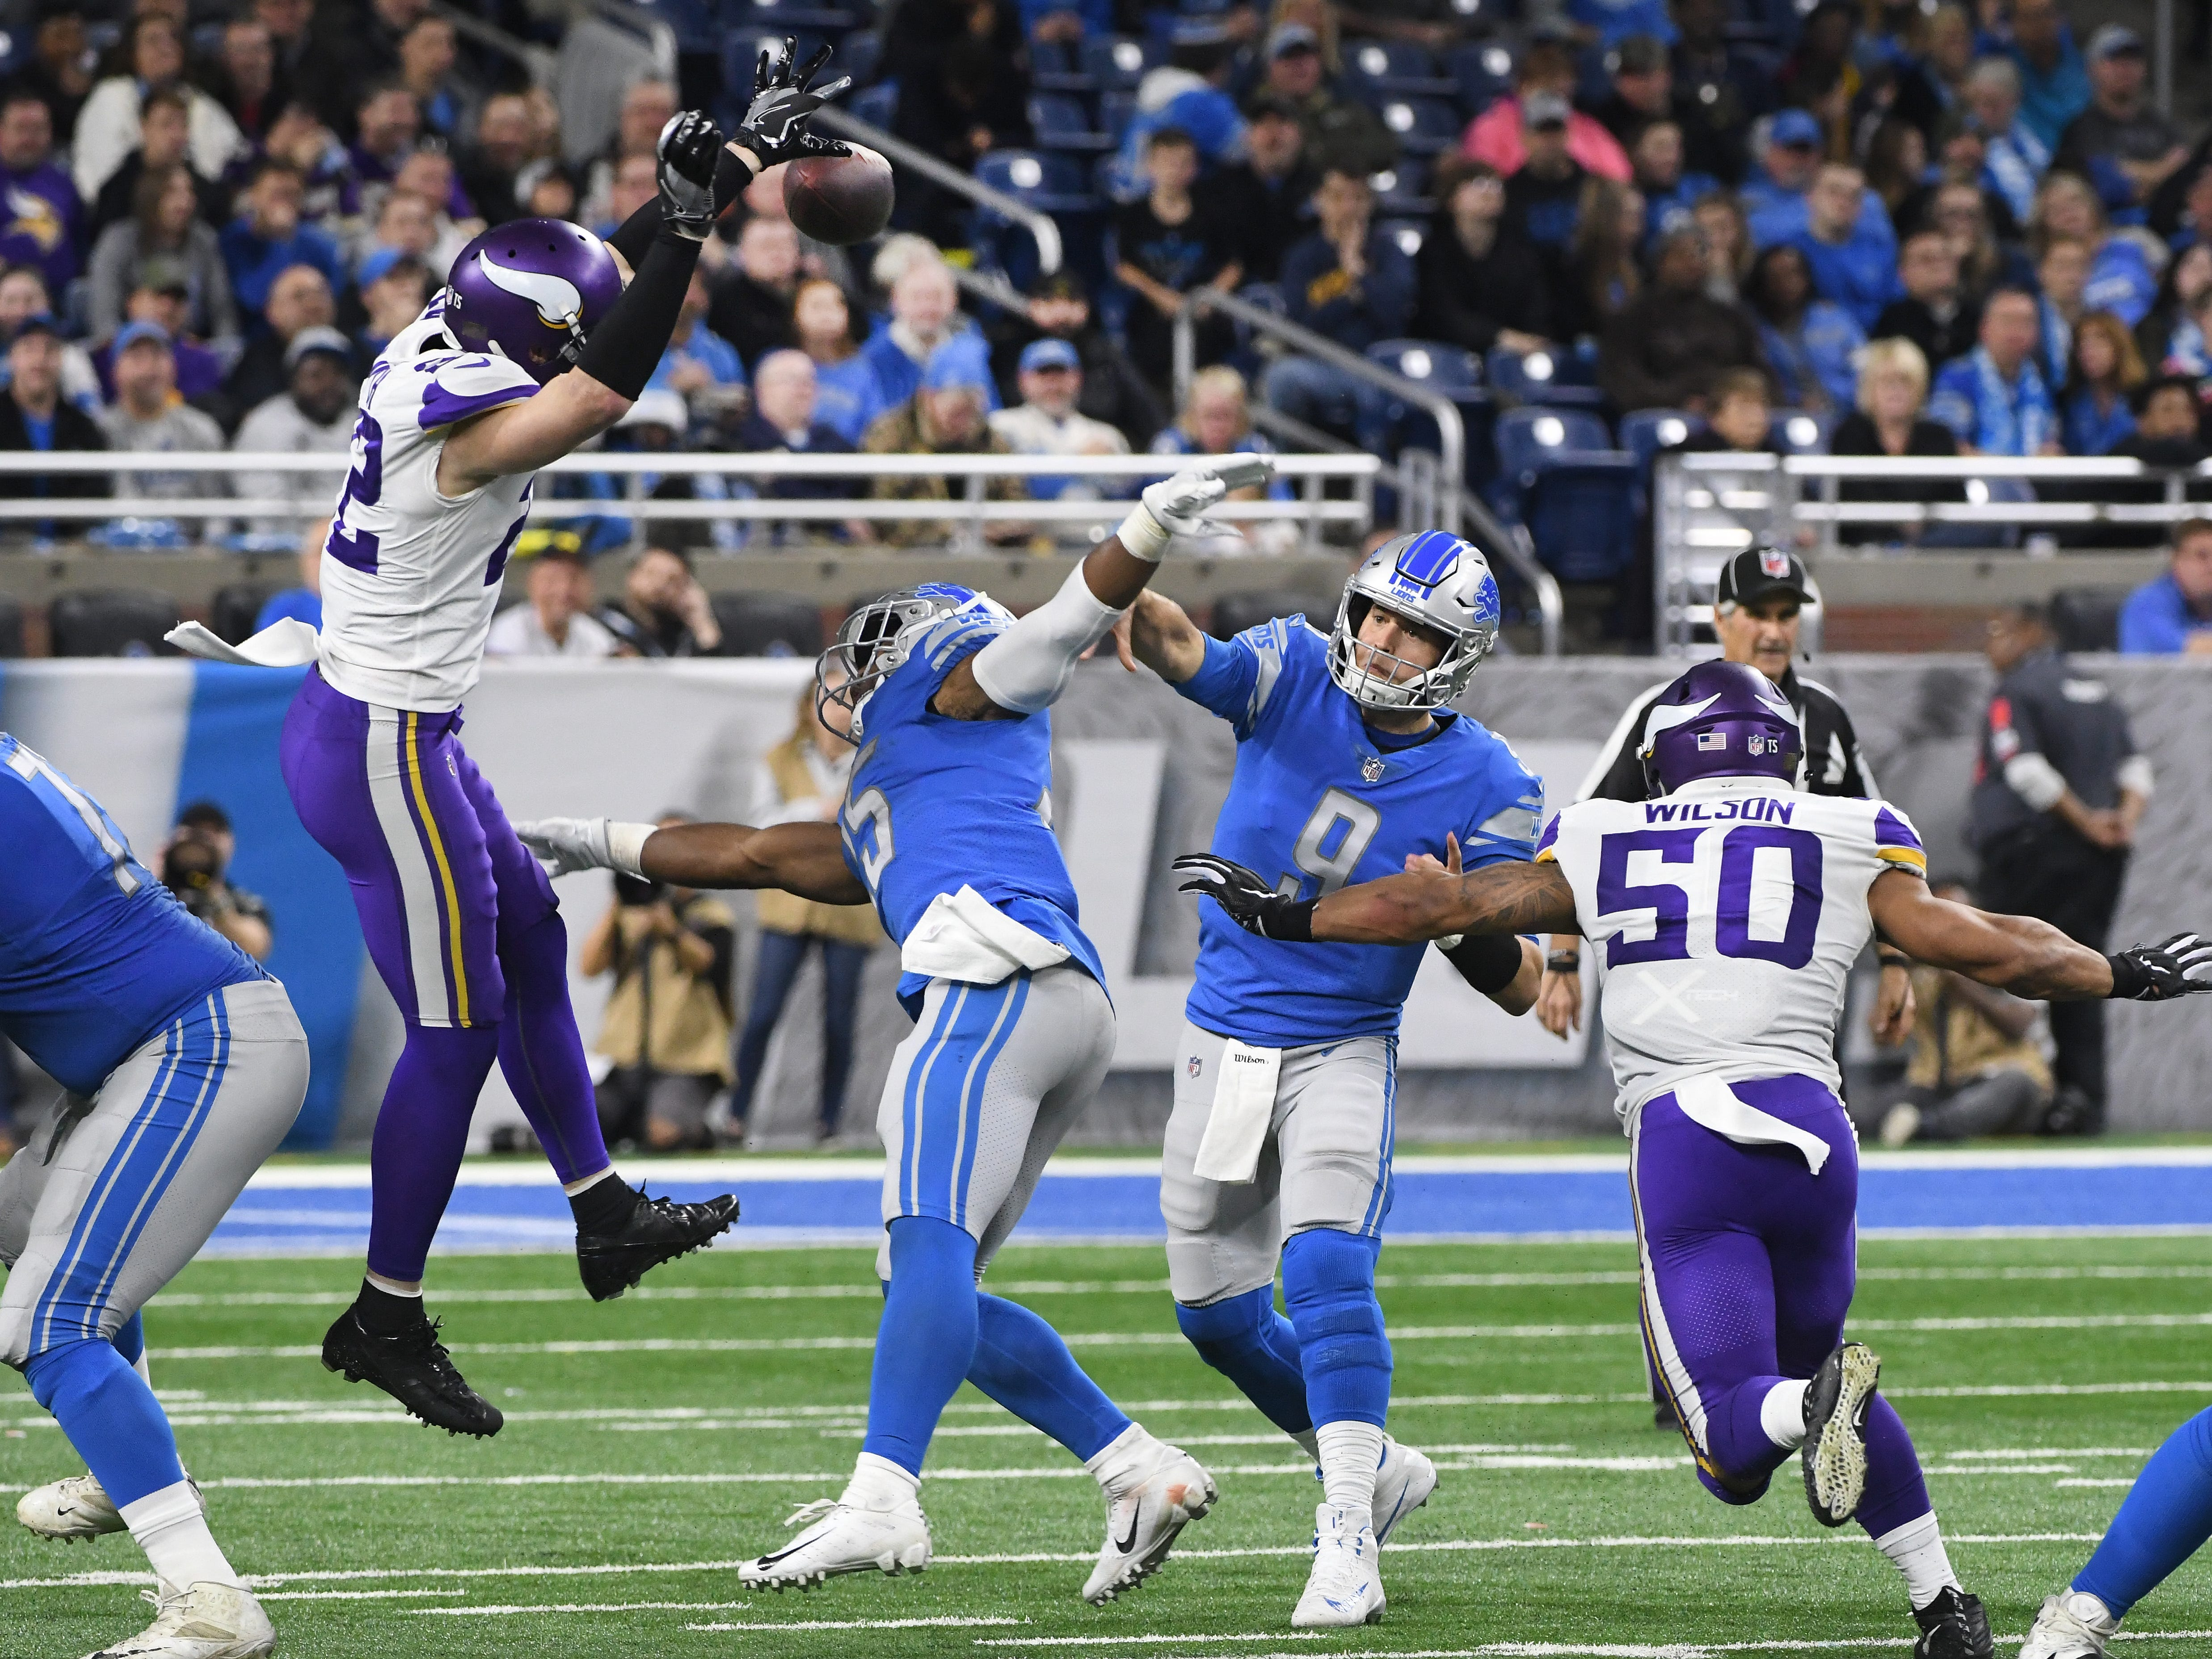 Vikings' Harrison Smith blocks a pass by Lions quarterback Matthew Stafford in the second quarter.